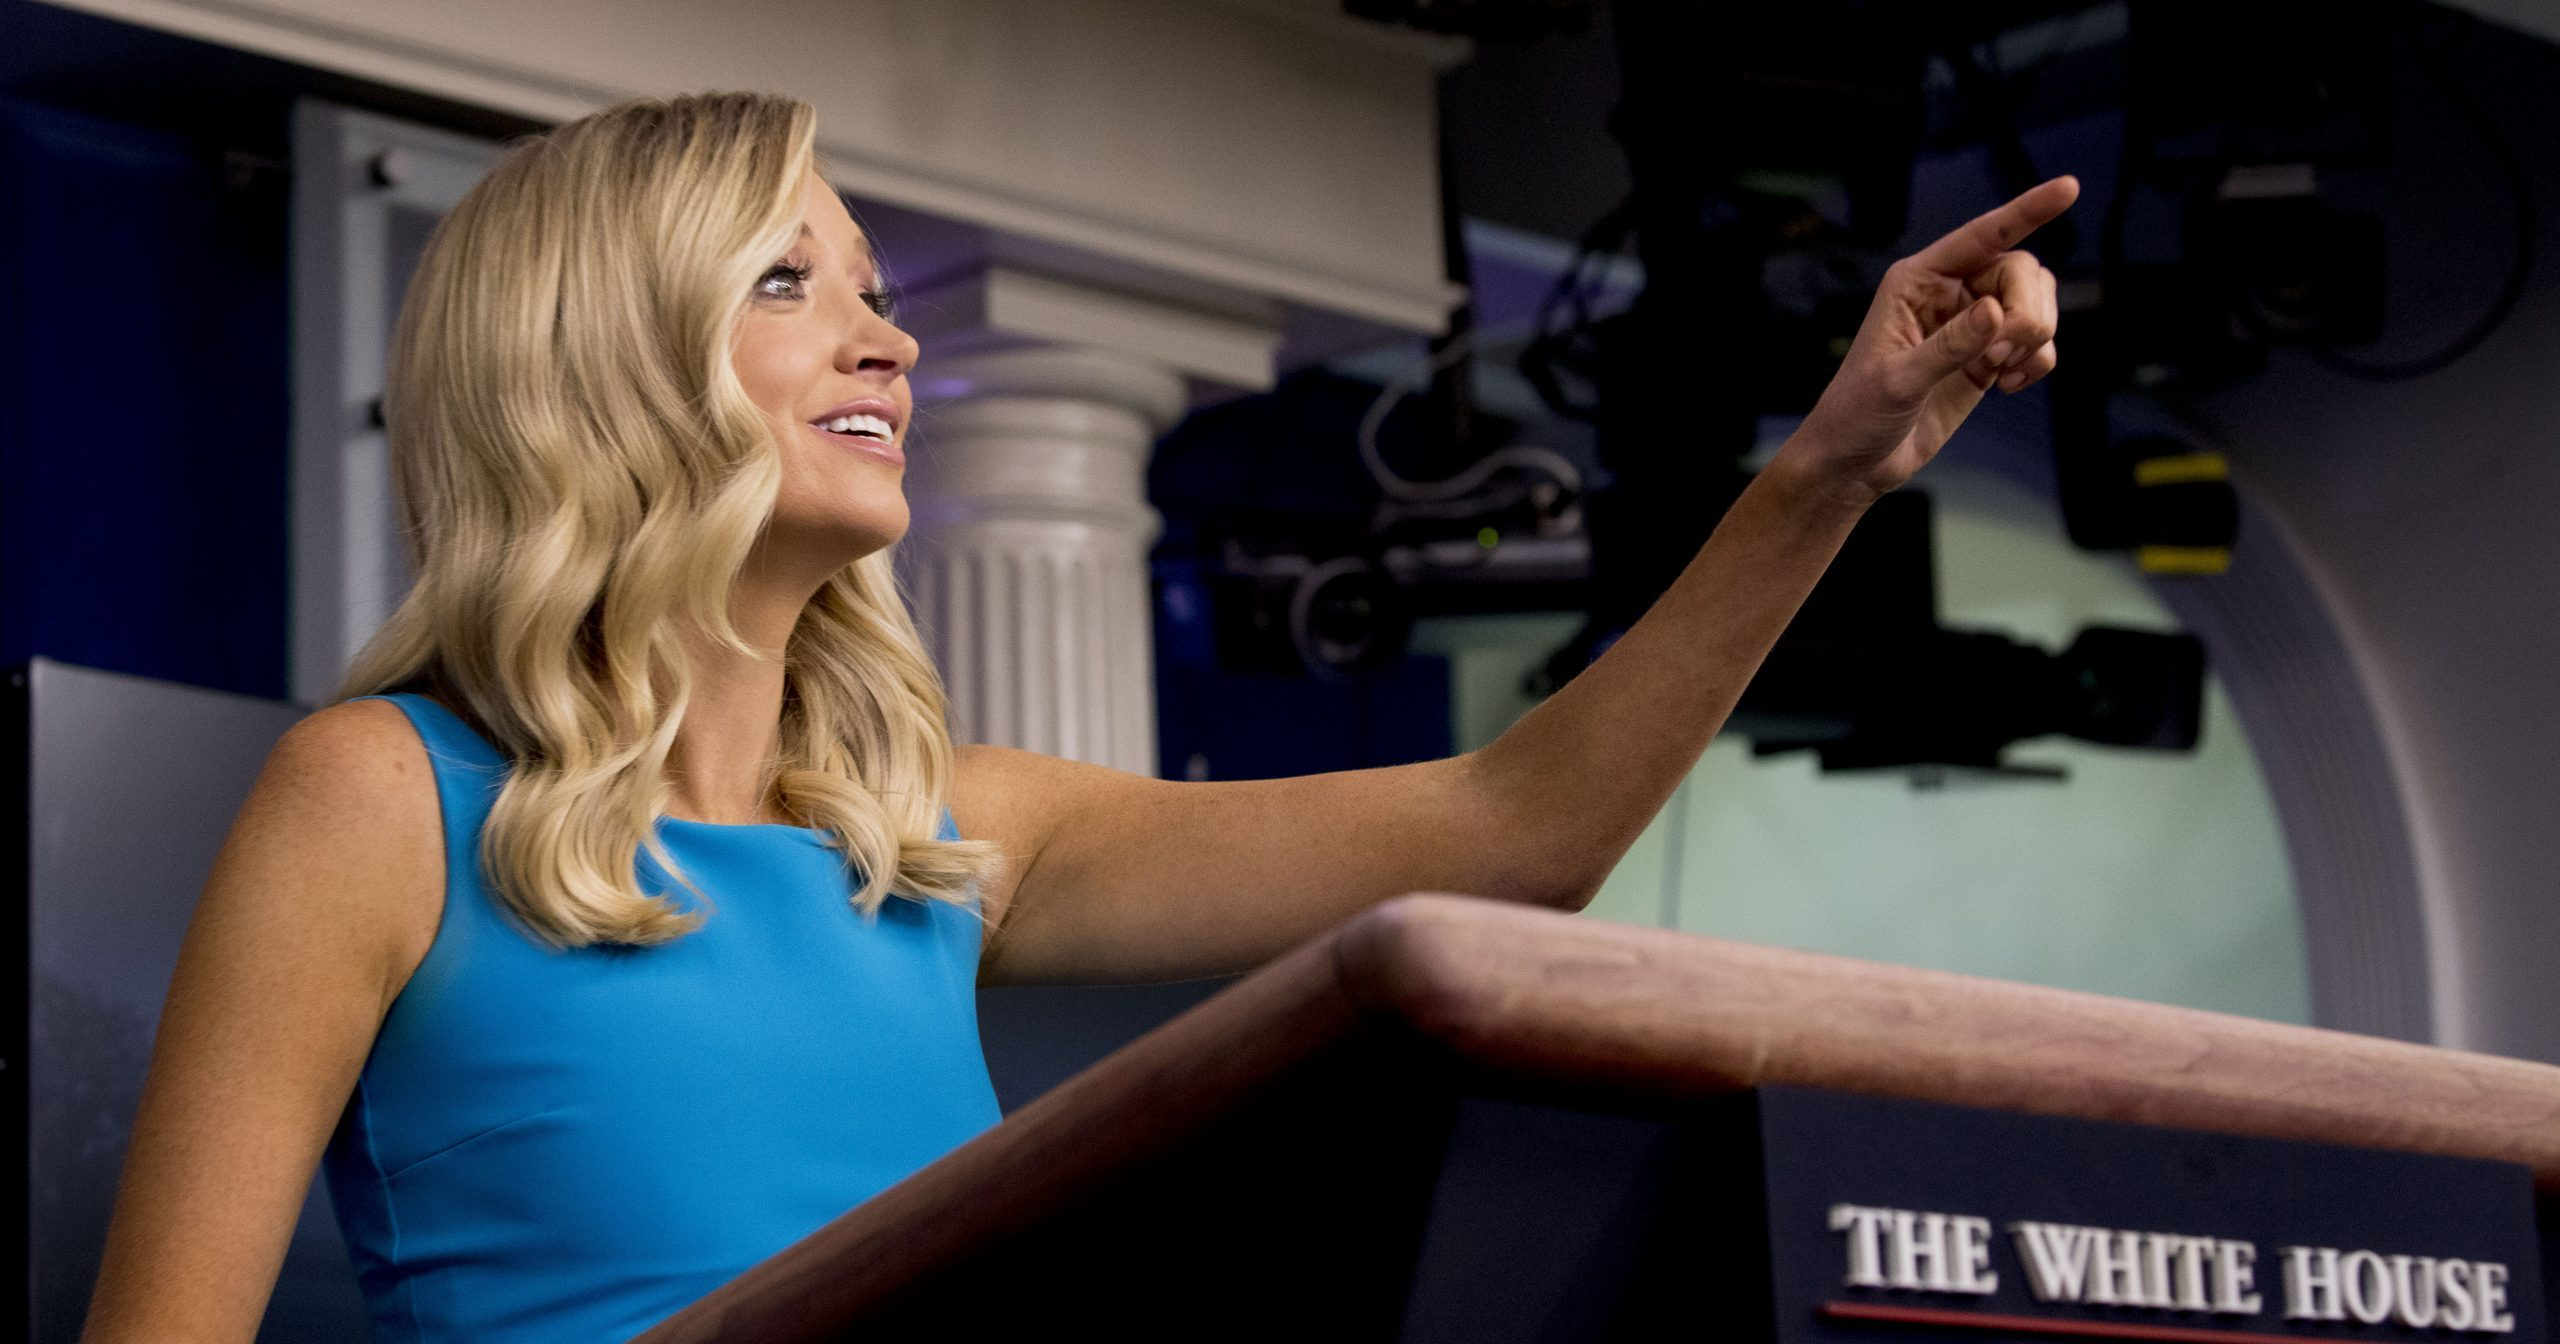 White House press secretary Kayleigh McEnany calls on a reporter during a briefing at the White House on June 3, 2020, in Washington, D.C.